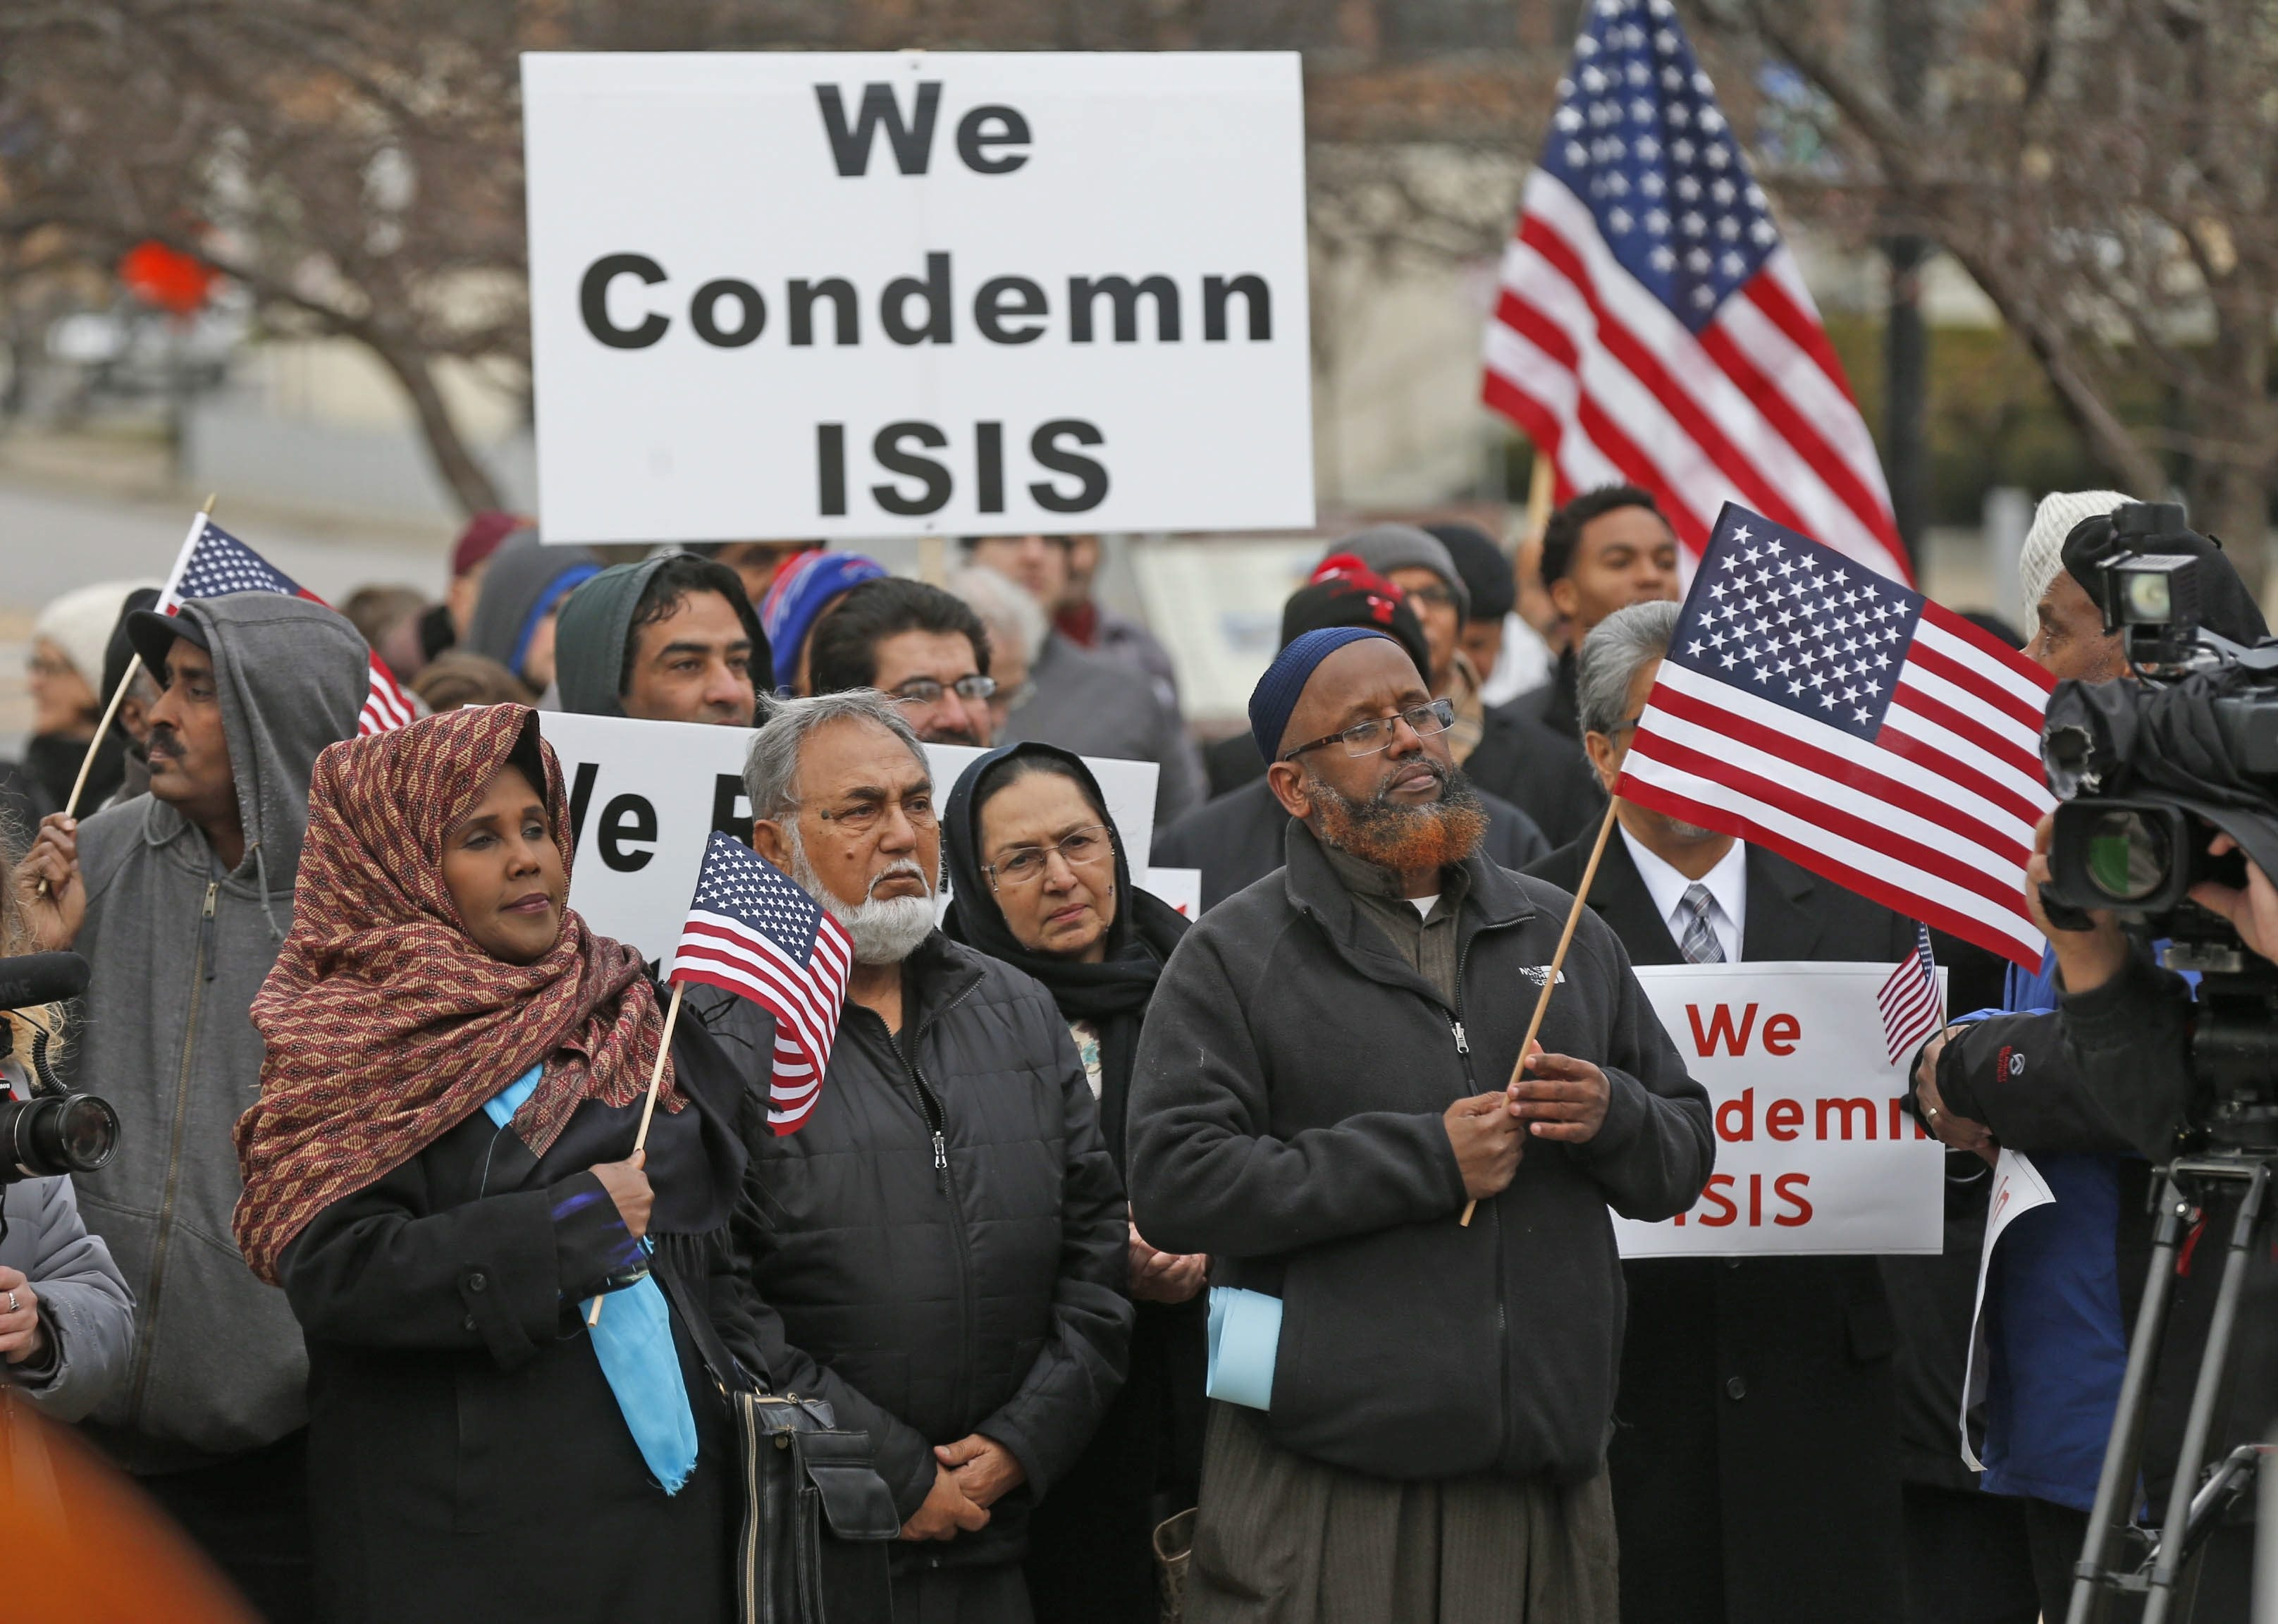 Hundreds of area residents rallied Thursday in Niagara Square against calls to ban refugees and Muslim immigrants from entering the U.S. Meanwhile, Erie County legislators held a hearing on resettlement efforts.